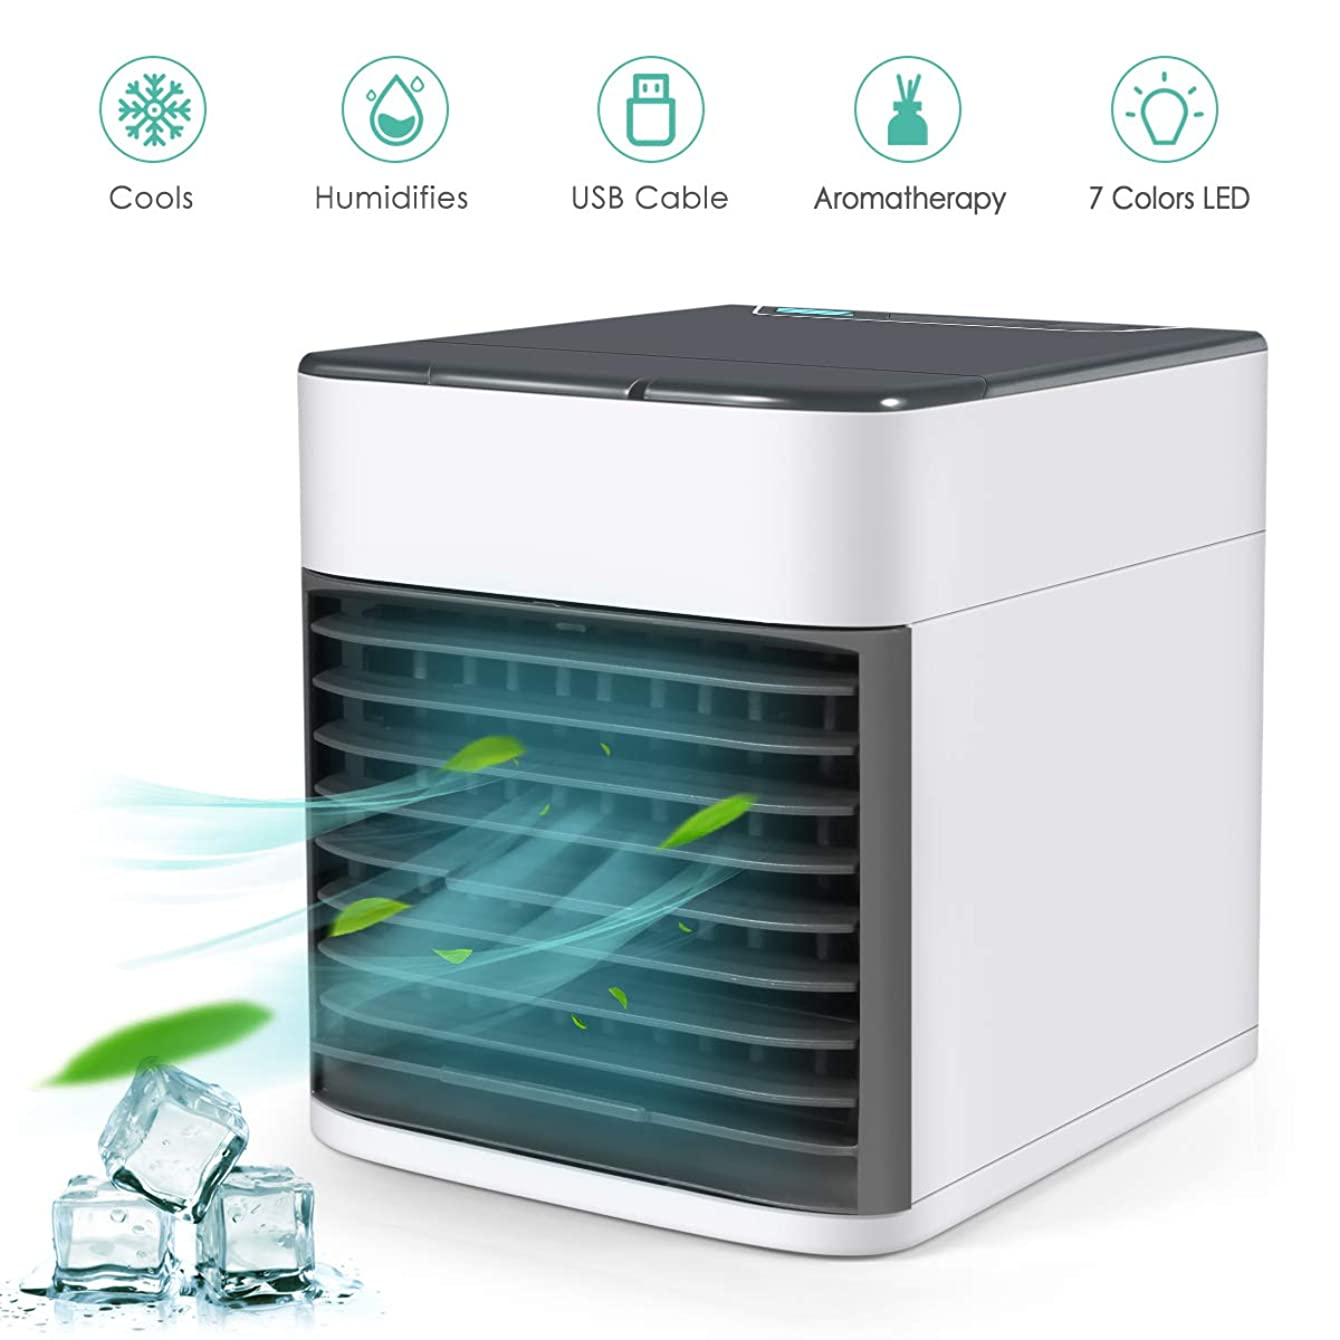 VANTAKOOL Air Conditioner Fan, Personal USB Air Cooler with LED Lights,Mini Air Purifier Humidifier for Home Room Office,Mini Desk Fan